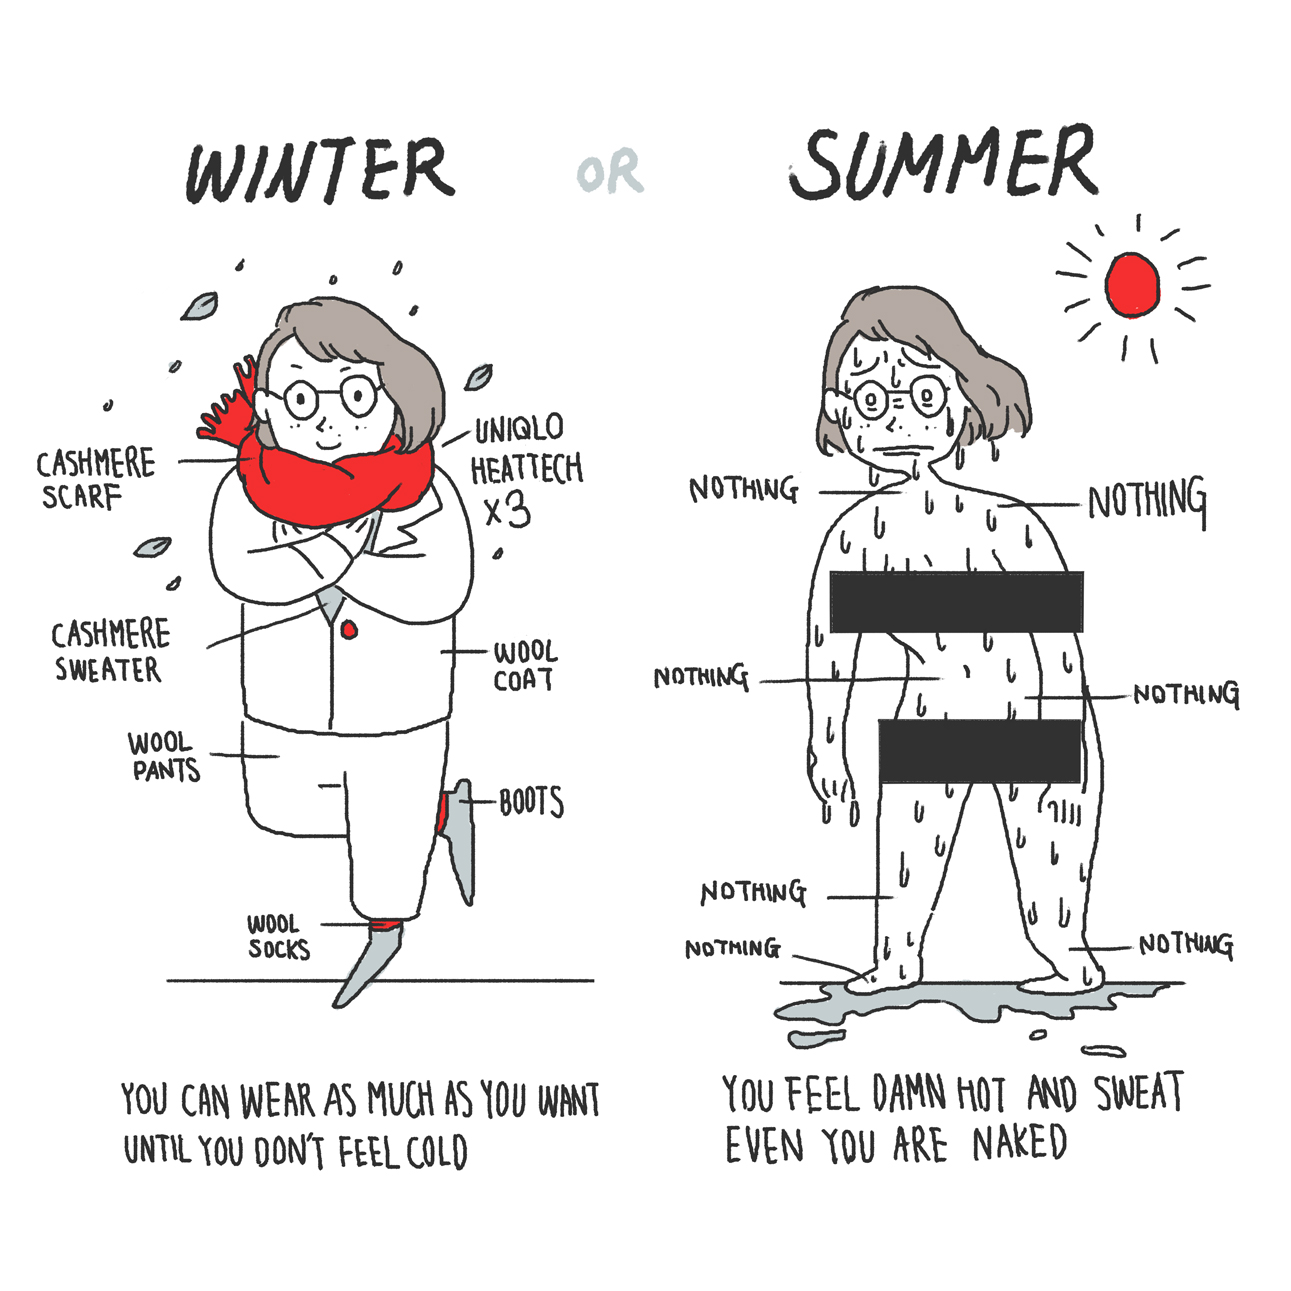 Winter or Summer?